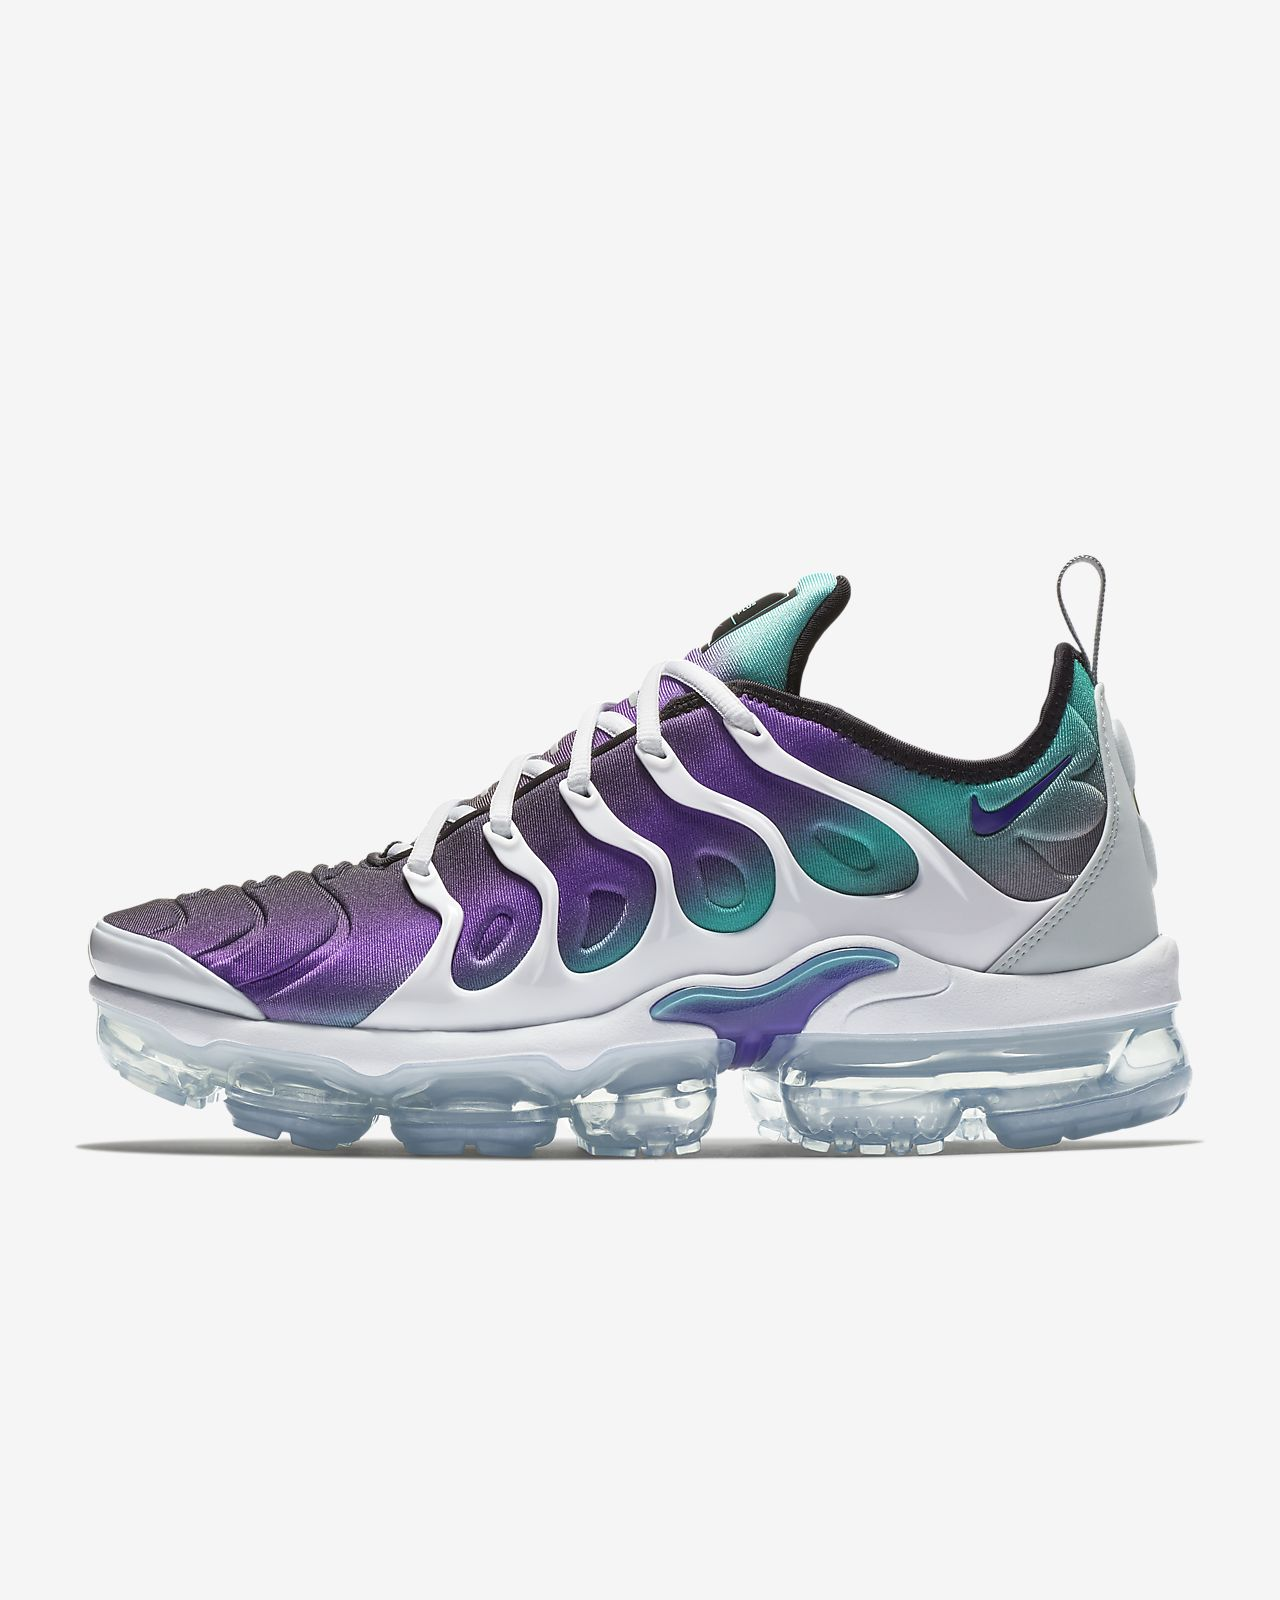 0a6a9fb6970 Buy nike air vapormax plus mens sale   Up to 68% Discounts